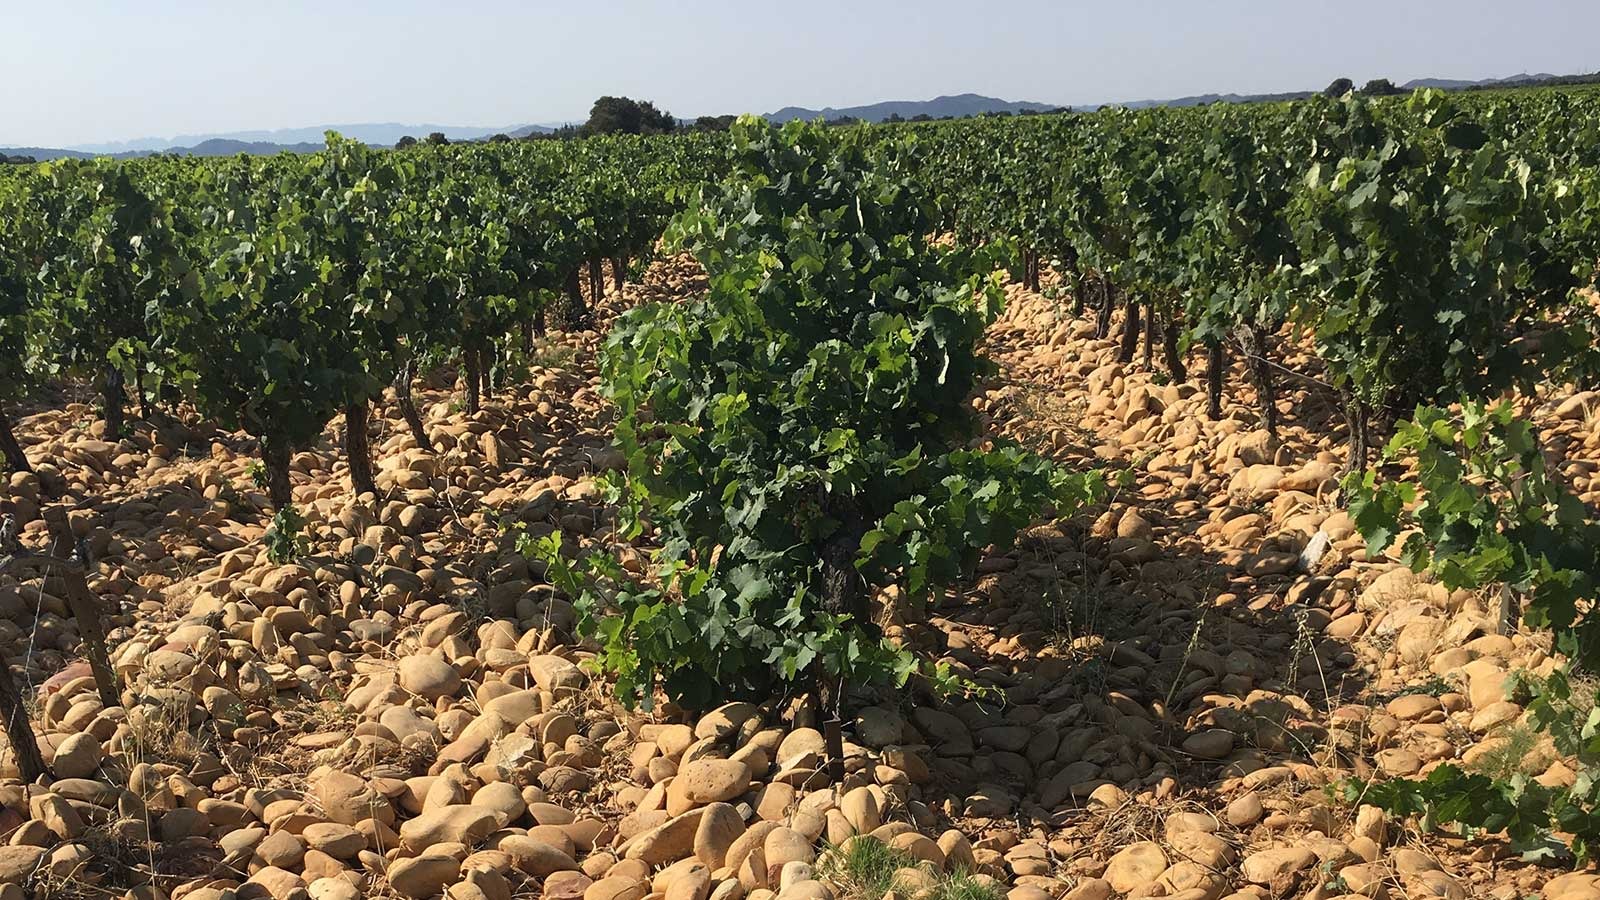 Large, rounded stones cover the rows between vines in a vineyard on the Vallongue plateau.